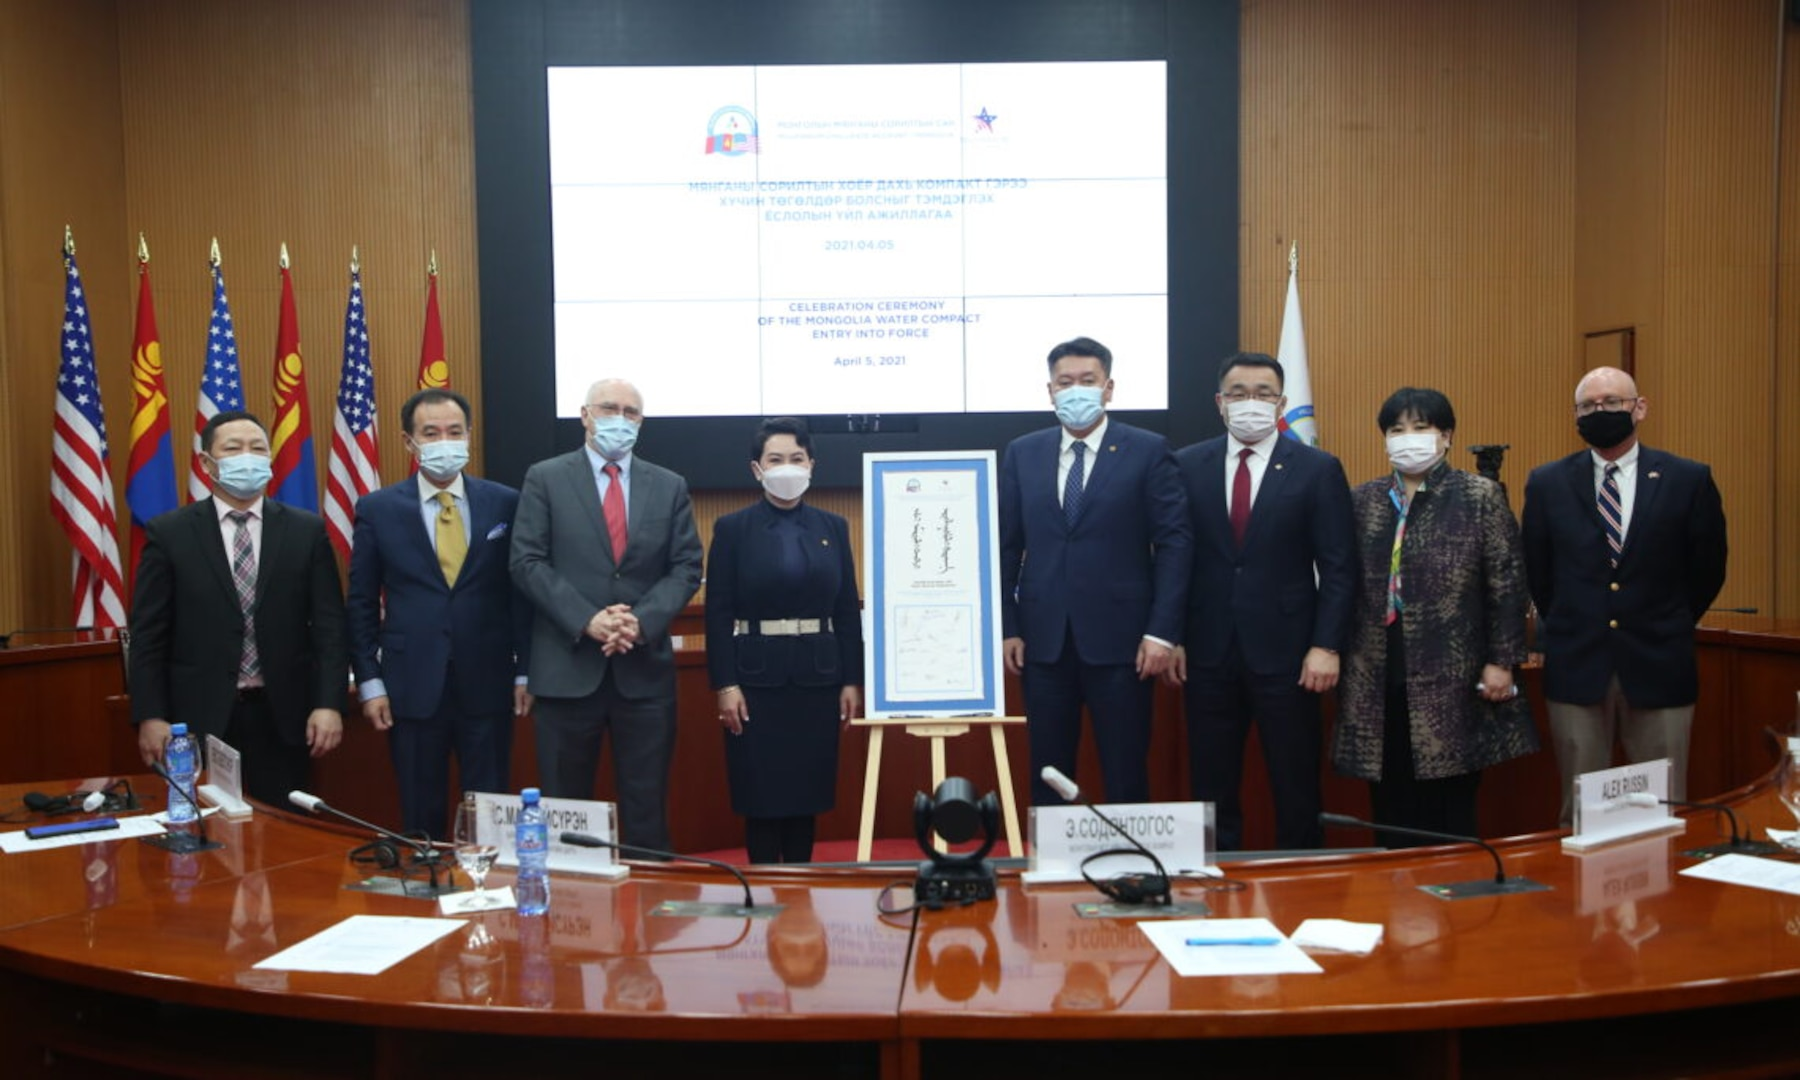 MCC Mongolia Water Compact Starts 5-Year Timeline with Entry Into Force